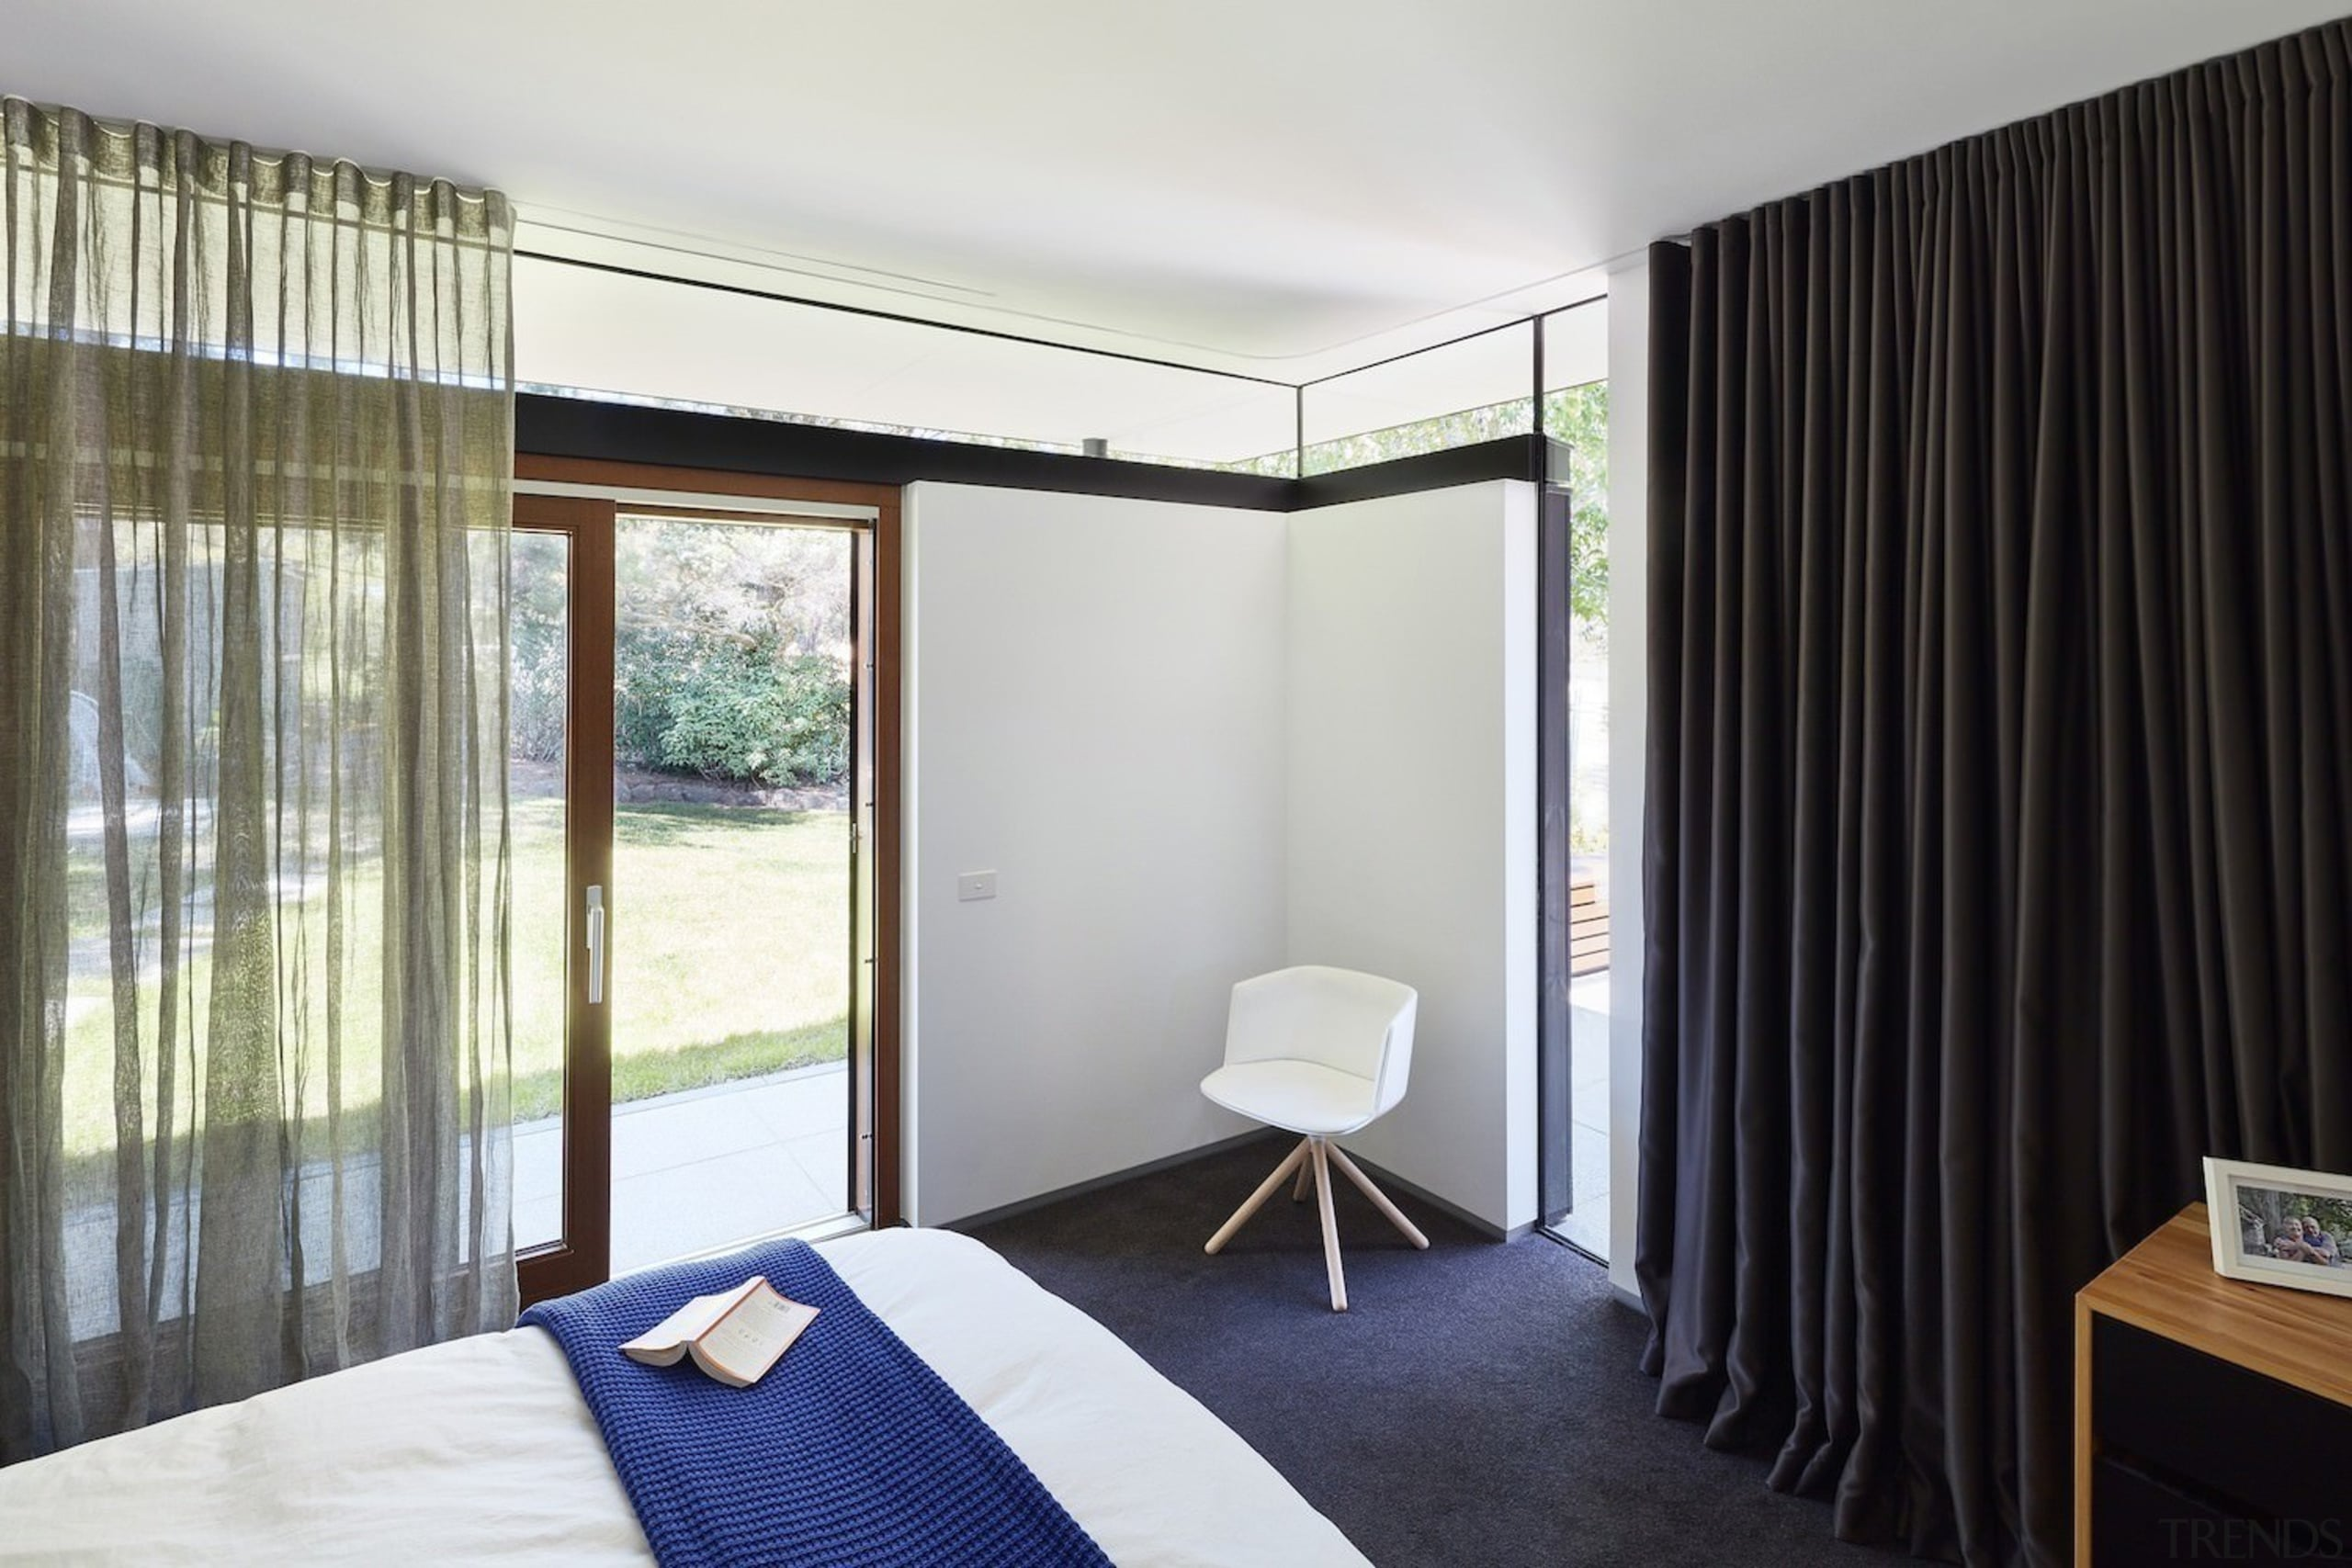 Architect: Architect: Steffen Welsch ArchitectsPhotography: Rhiannon bedroom, ceiling, condominium, curtain, interior design, property, real estate, room, window, window covering, window treatment, white, black